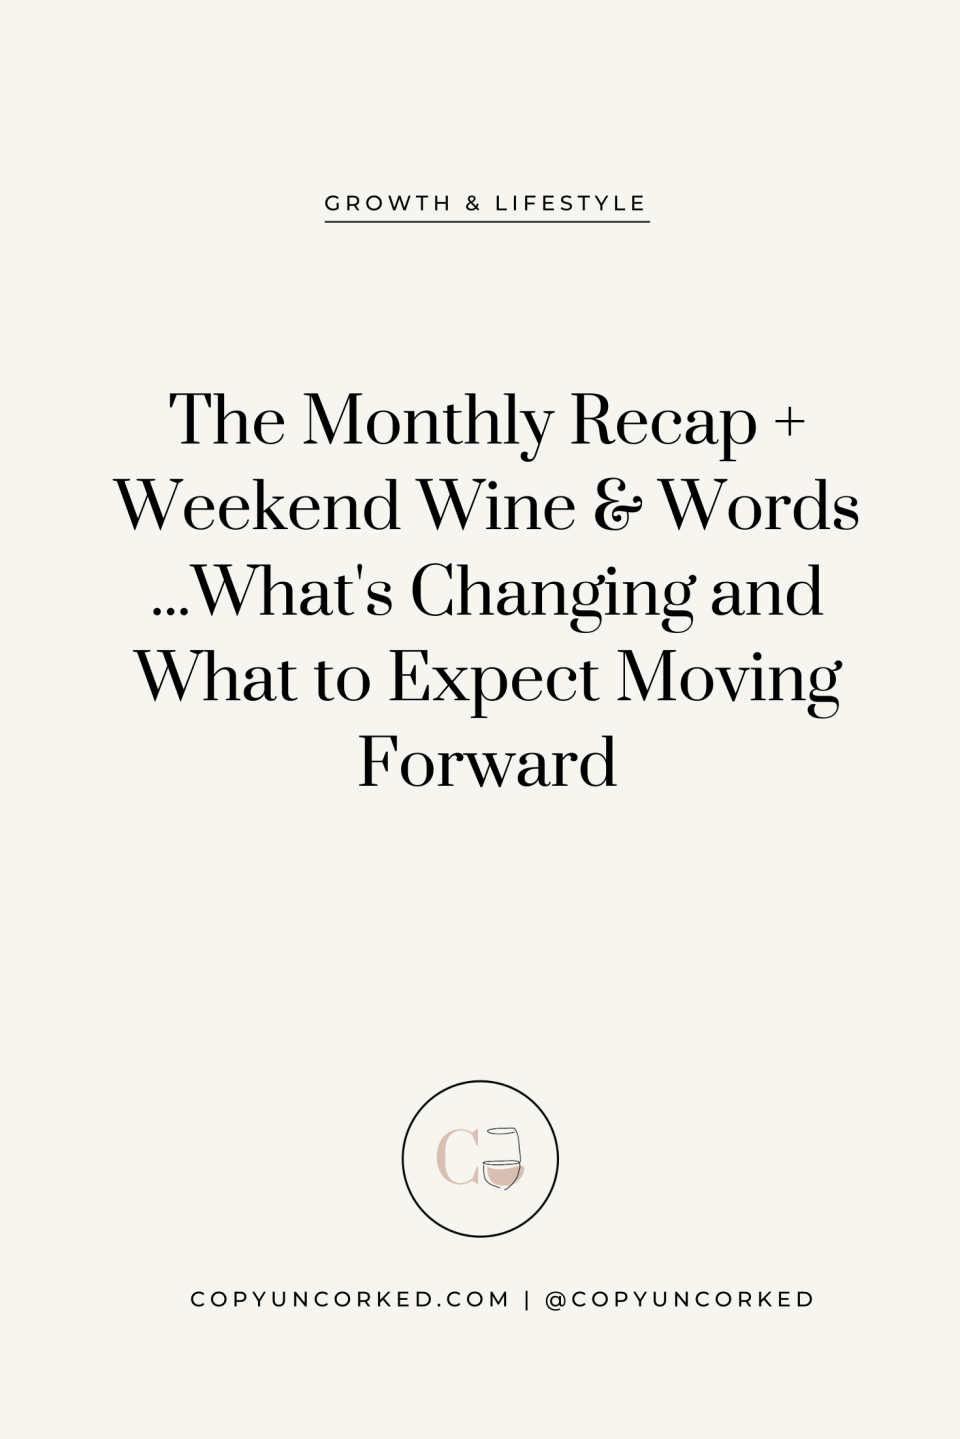 The Monthly Recap...is Moving! Where to Find It Moving Forward - copyuncorked.com